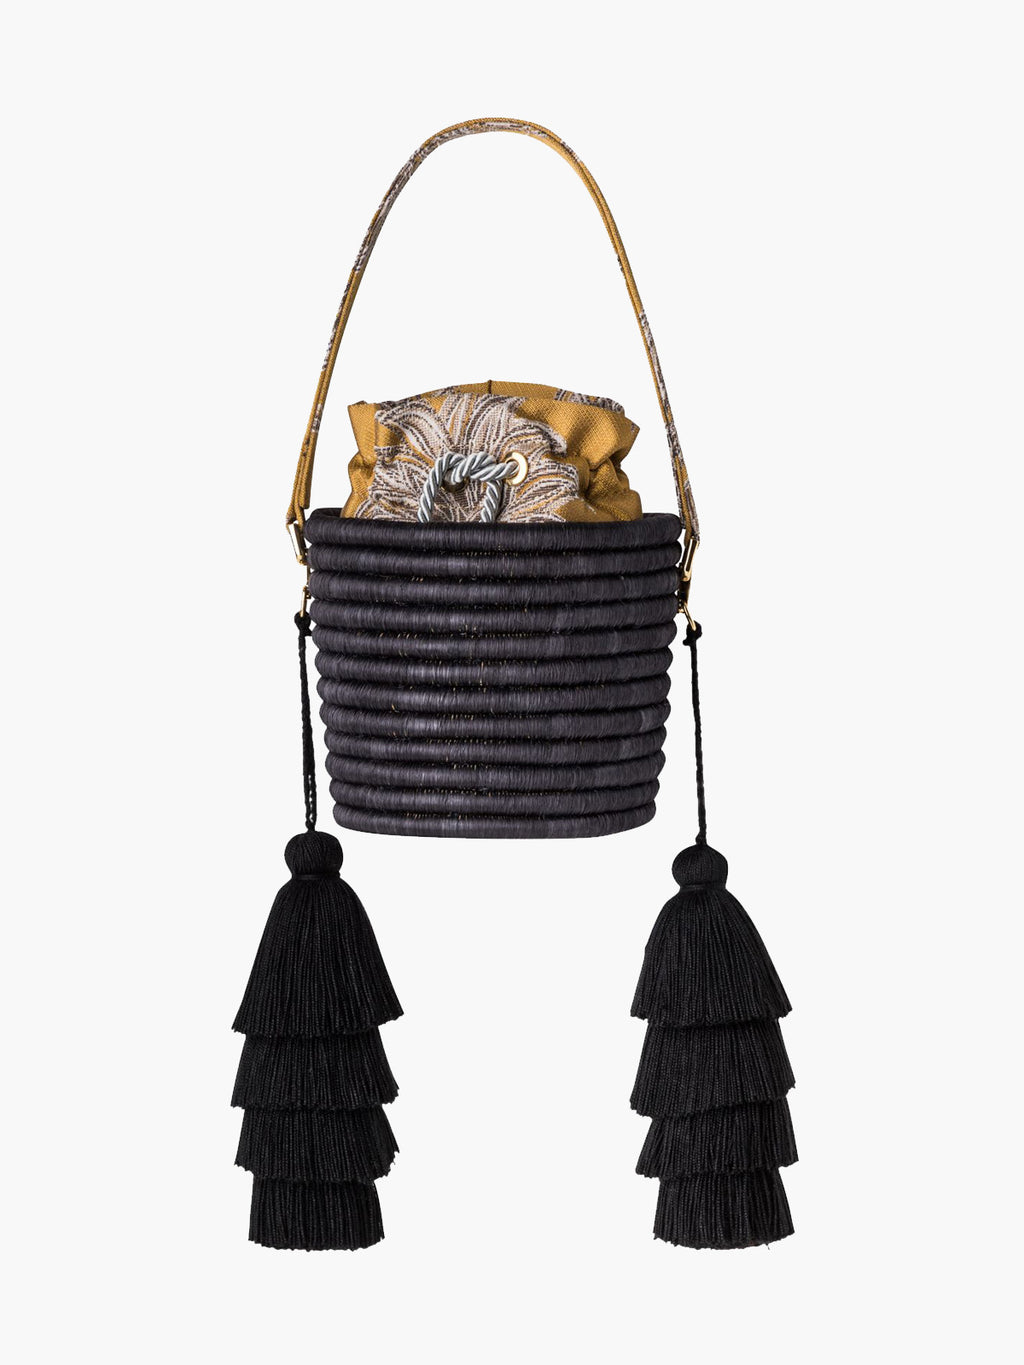 Bucket Bag | Hojarasca Gold